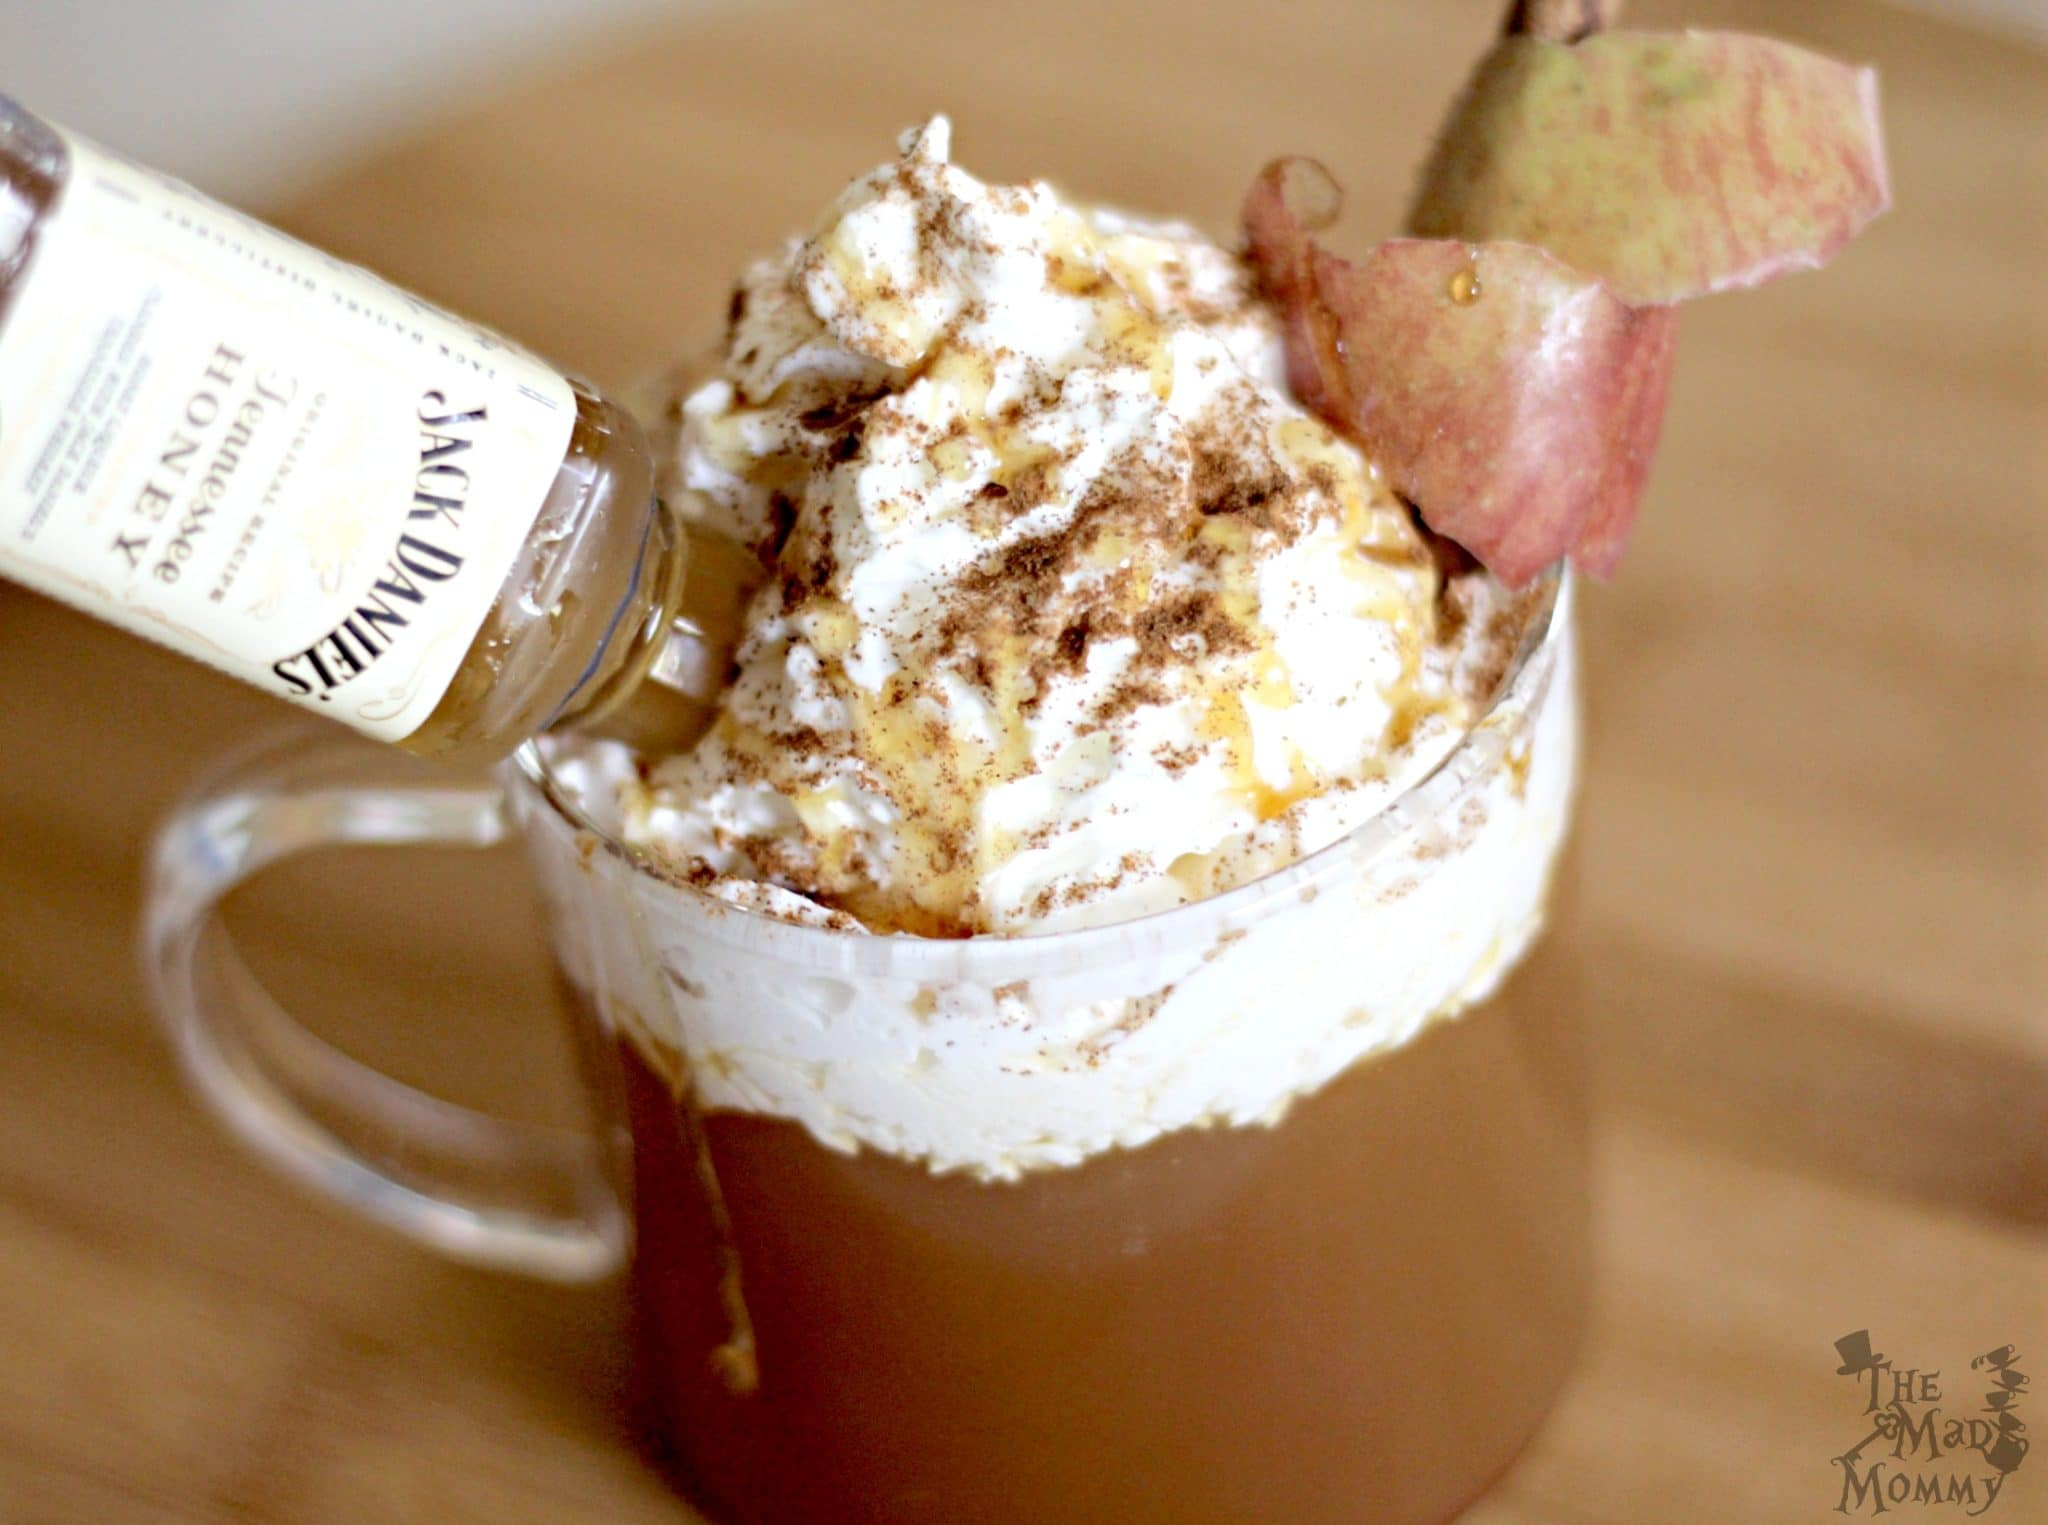 Looking for a little OOMPH in your Butter Rum Apple Cider? Well, spike it, baby! I suggest a shot of Jack Daniel's honey mixed in with the apple cider and Torani syrup!